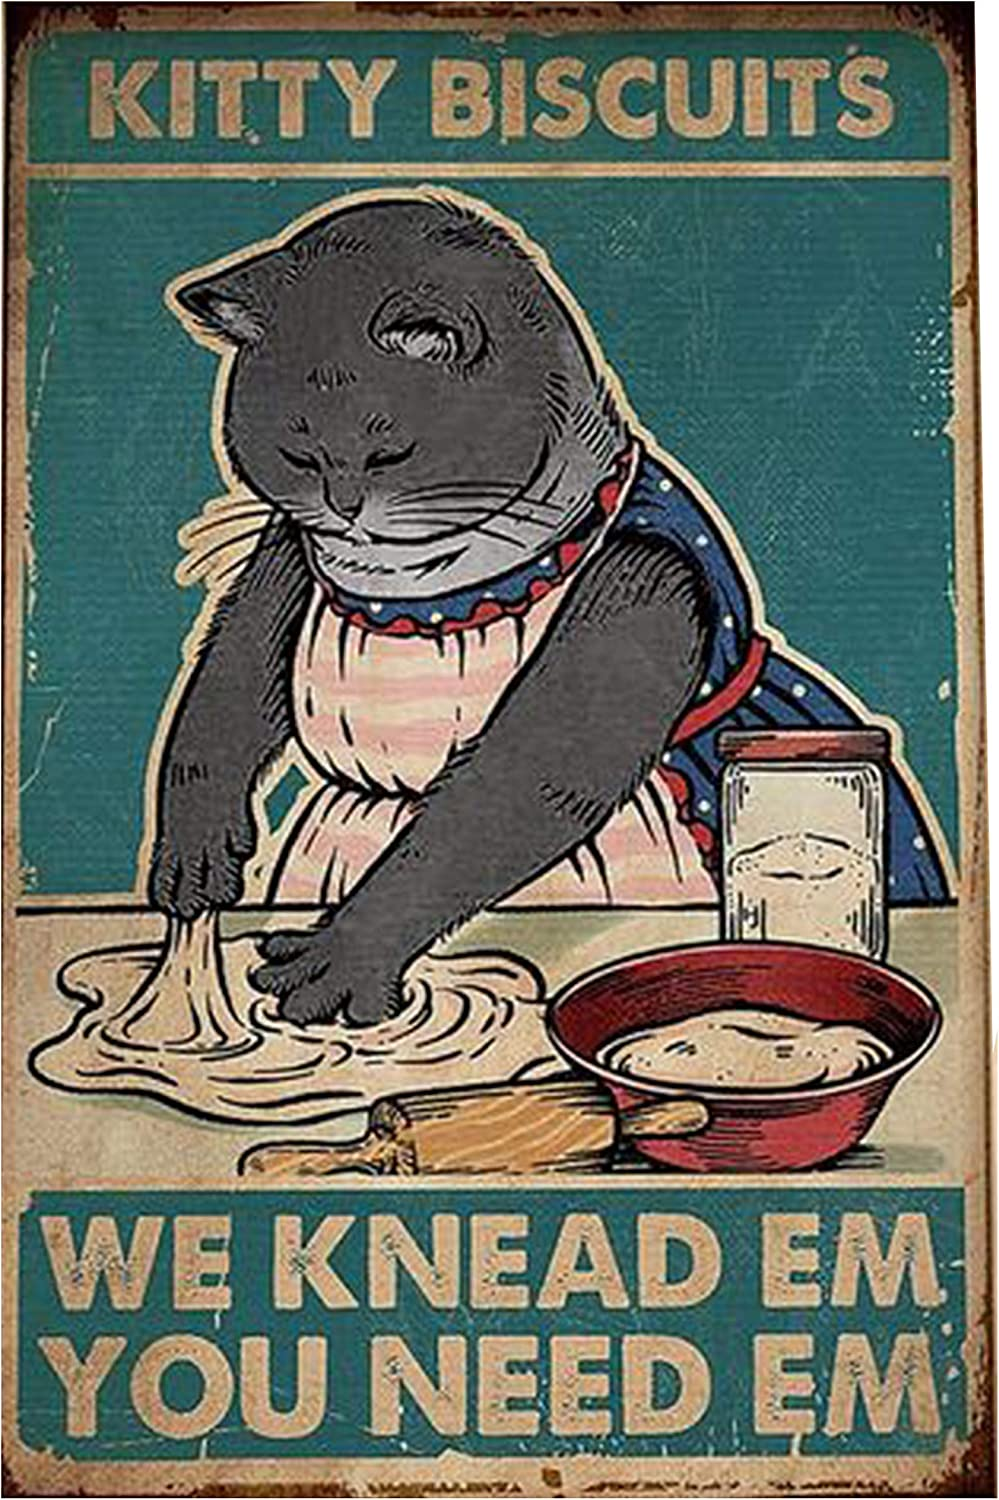 Kitty Biscuits We Knead Em You Need Em Retro Metal Tin Sign Vintage Aluminum Sign for Home Coffee Wall Decor 8x12 Inch